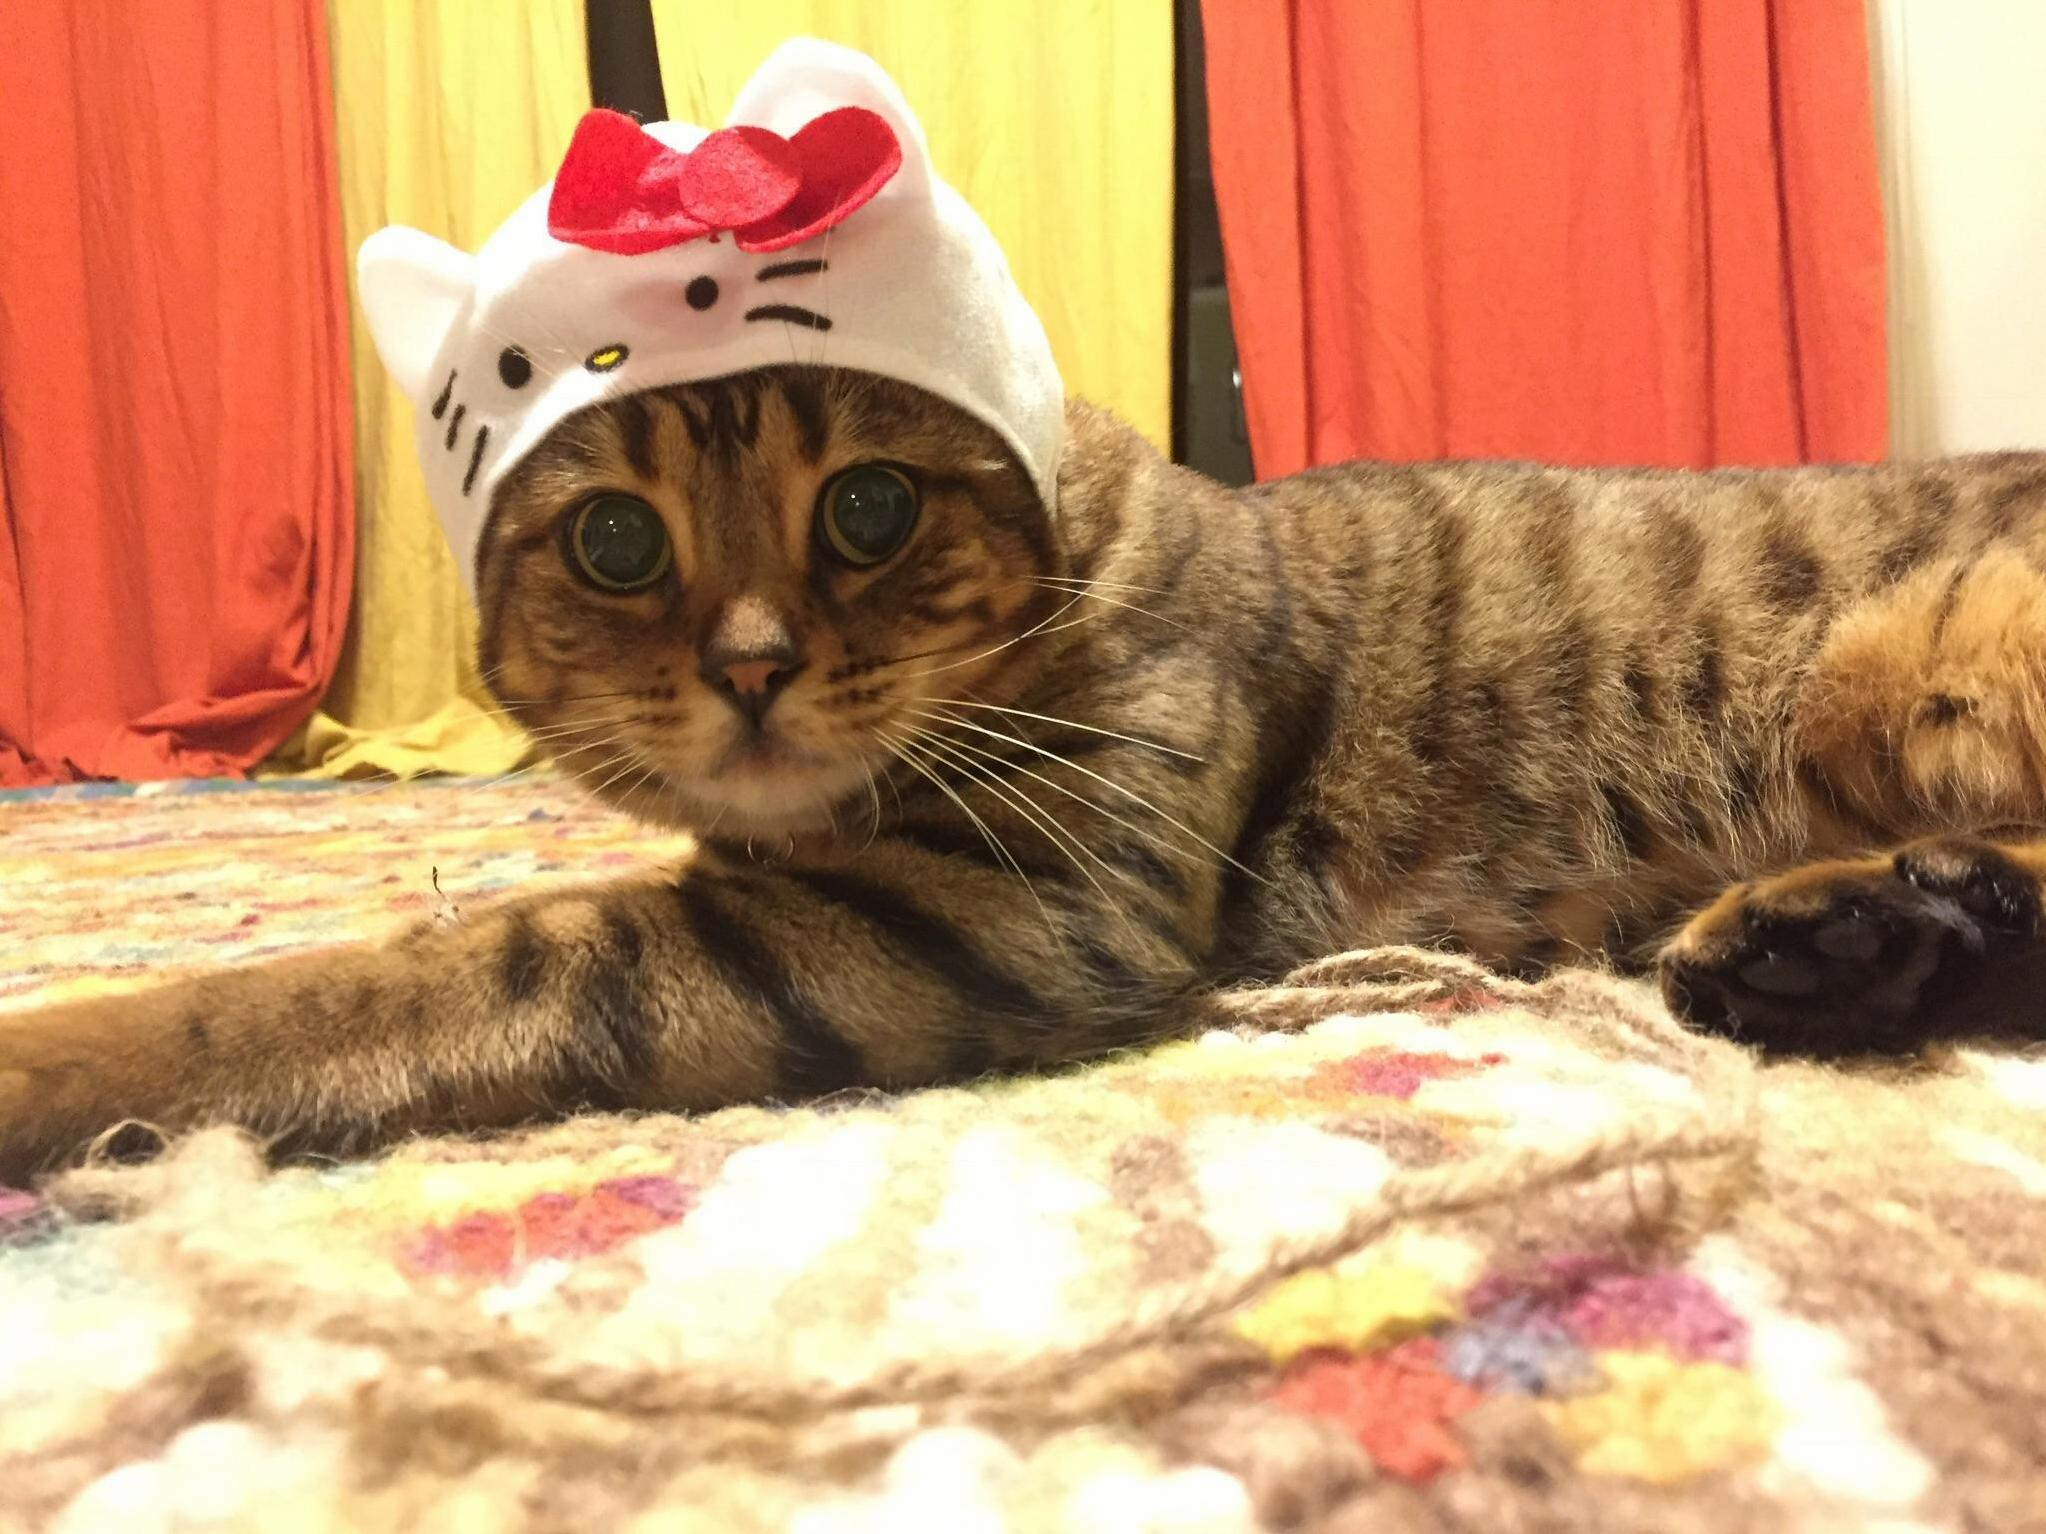 My friend traveled to japan and brought me back a few cat hats.. they did not disappoint. meet lil mama.